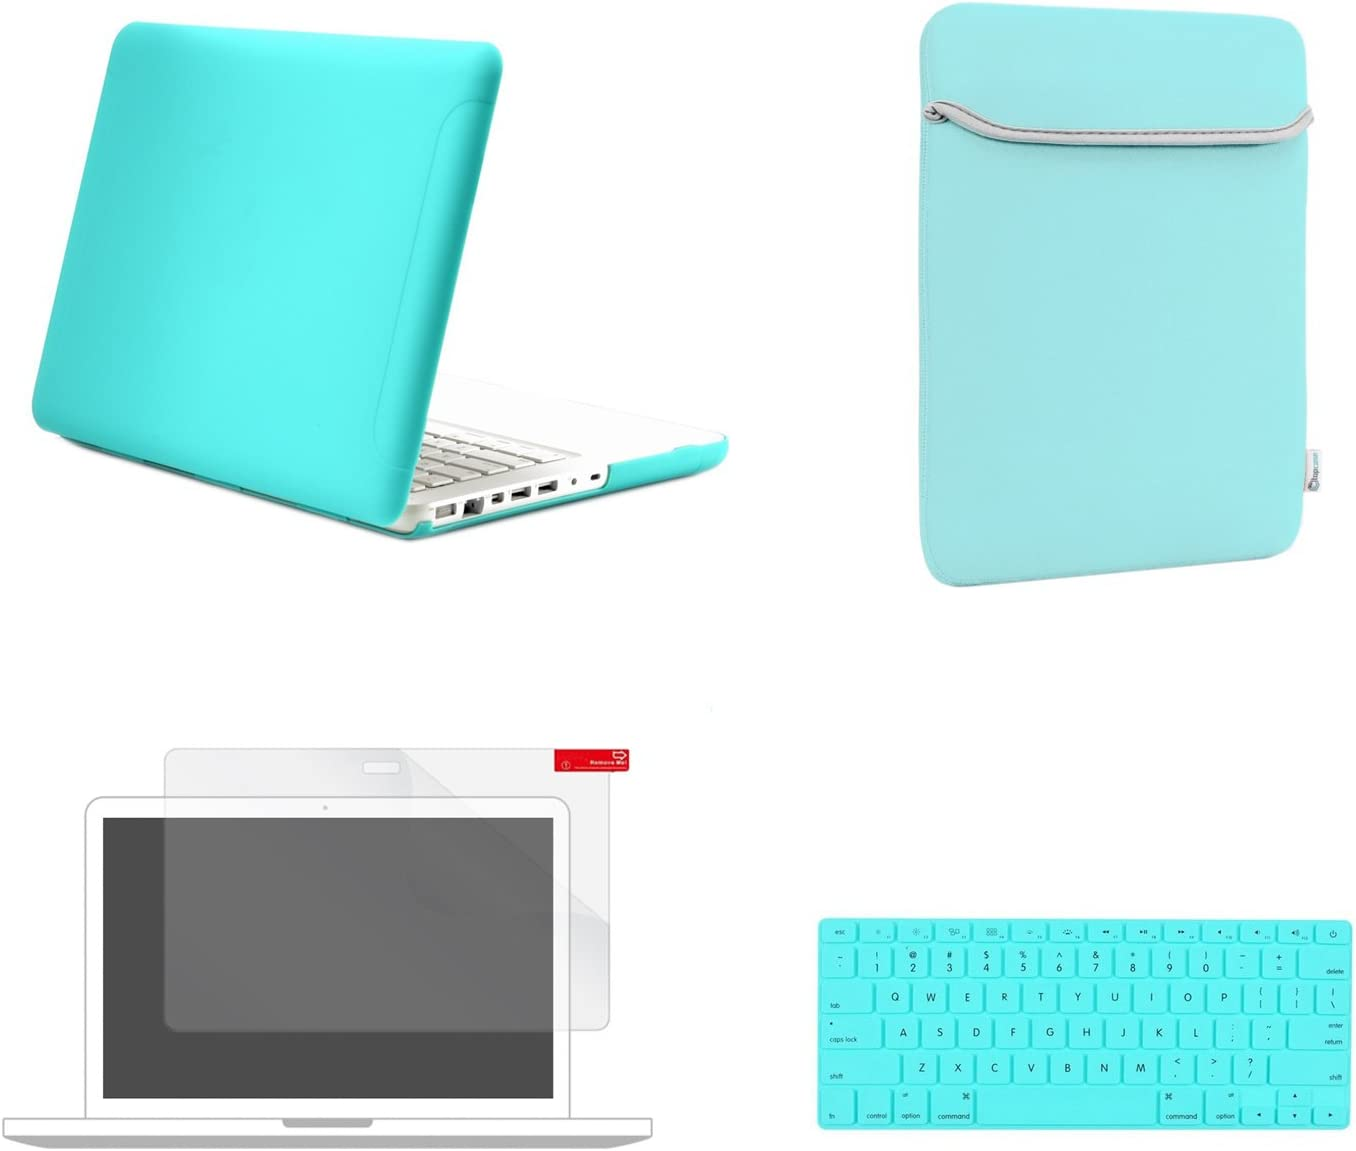 4-IN-1 Laptop Bag for Macbook Air Pro 13 2018 Matte Hard Case Keyboard Cover LCD